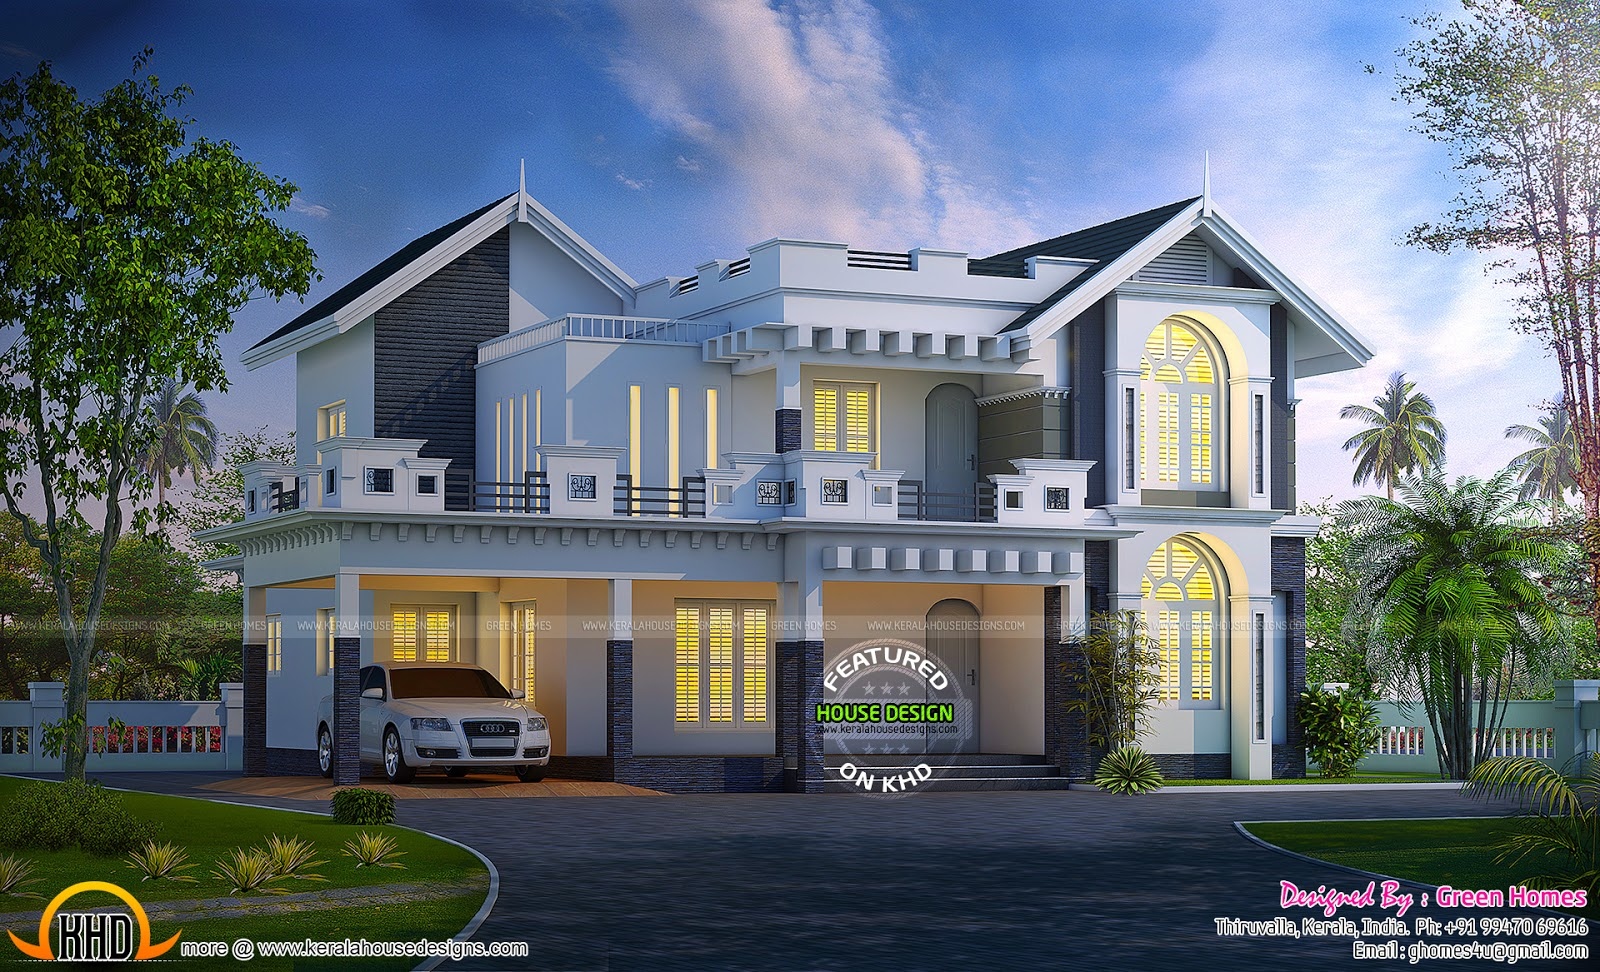 New kerala house plans for june 2015 keralahousedesigns for Kerala new home pictures